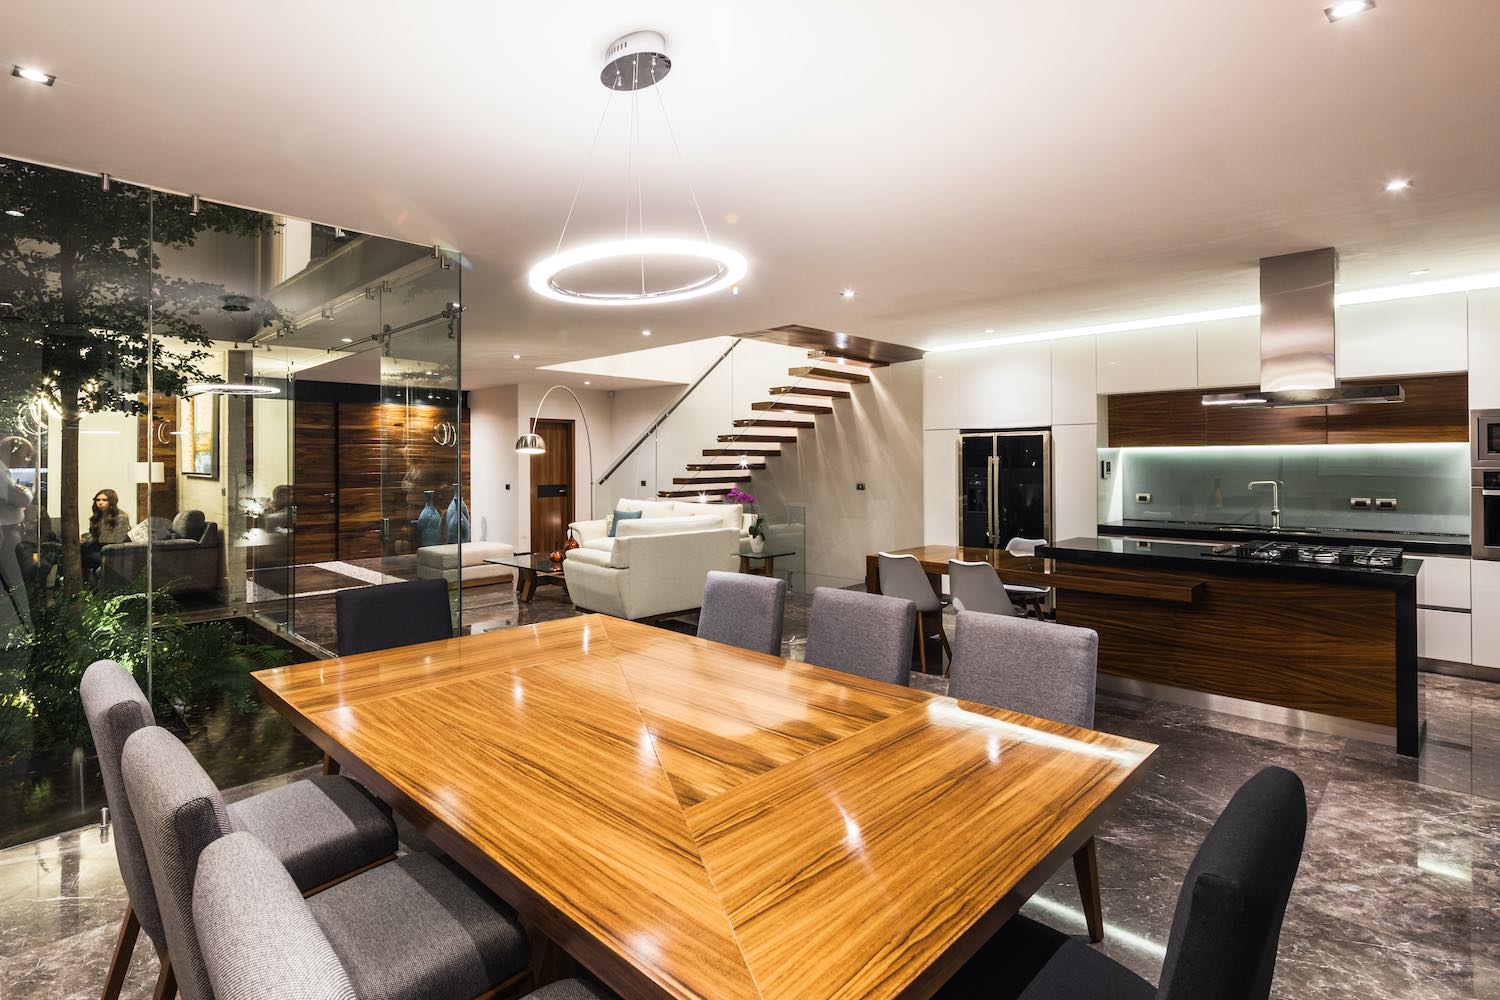 wooden dining table and chairs at night